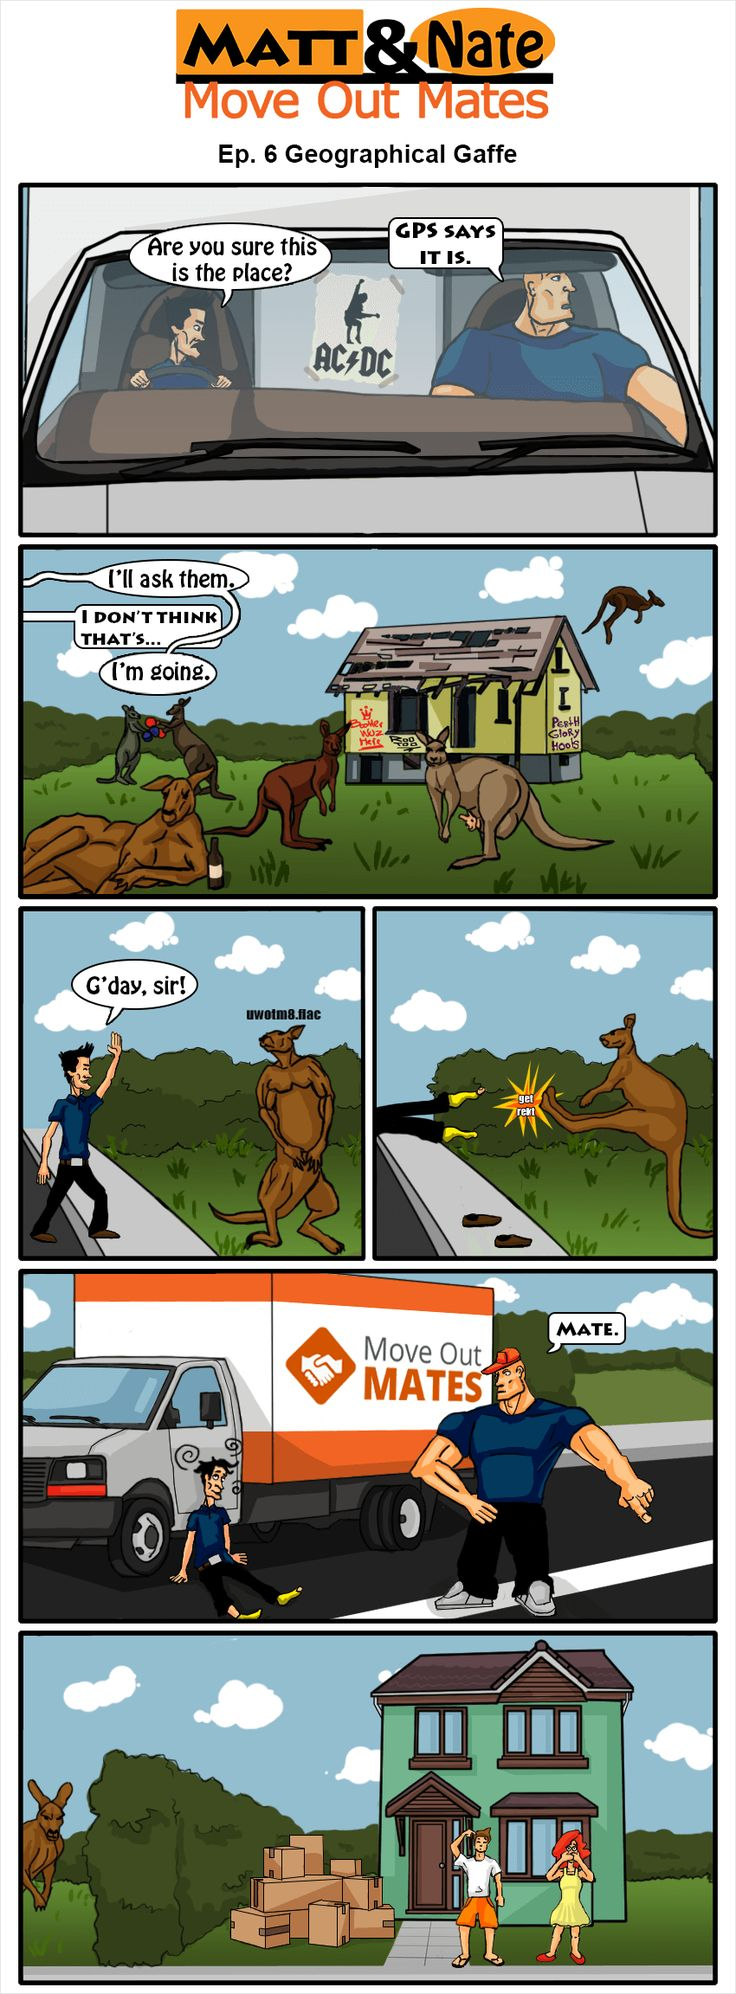 Nate the removalist gets into some trouble with a kangaroo over a wrong adress.